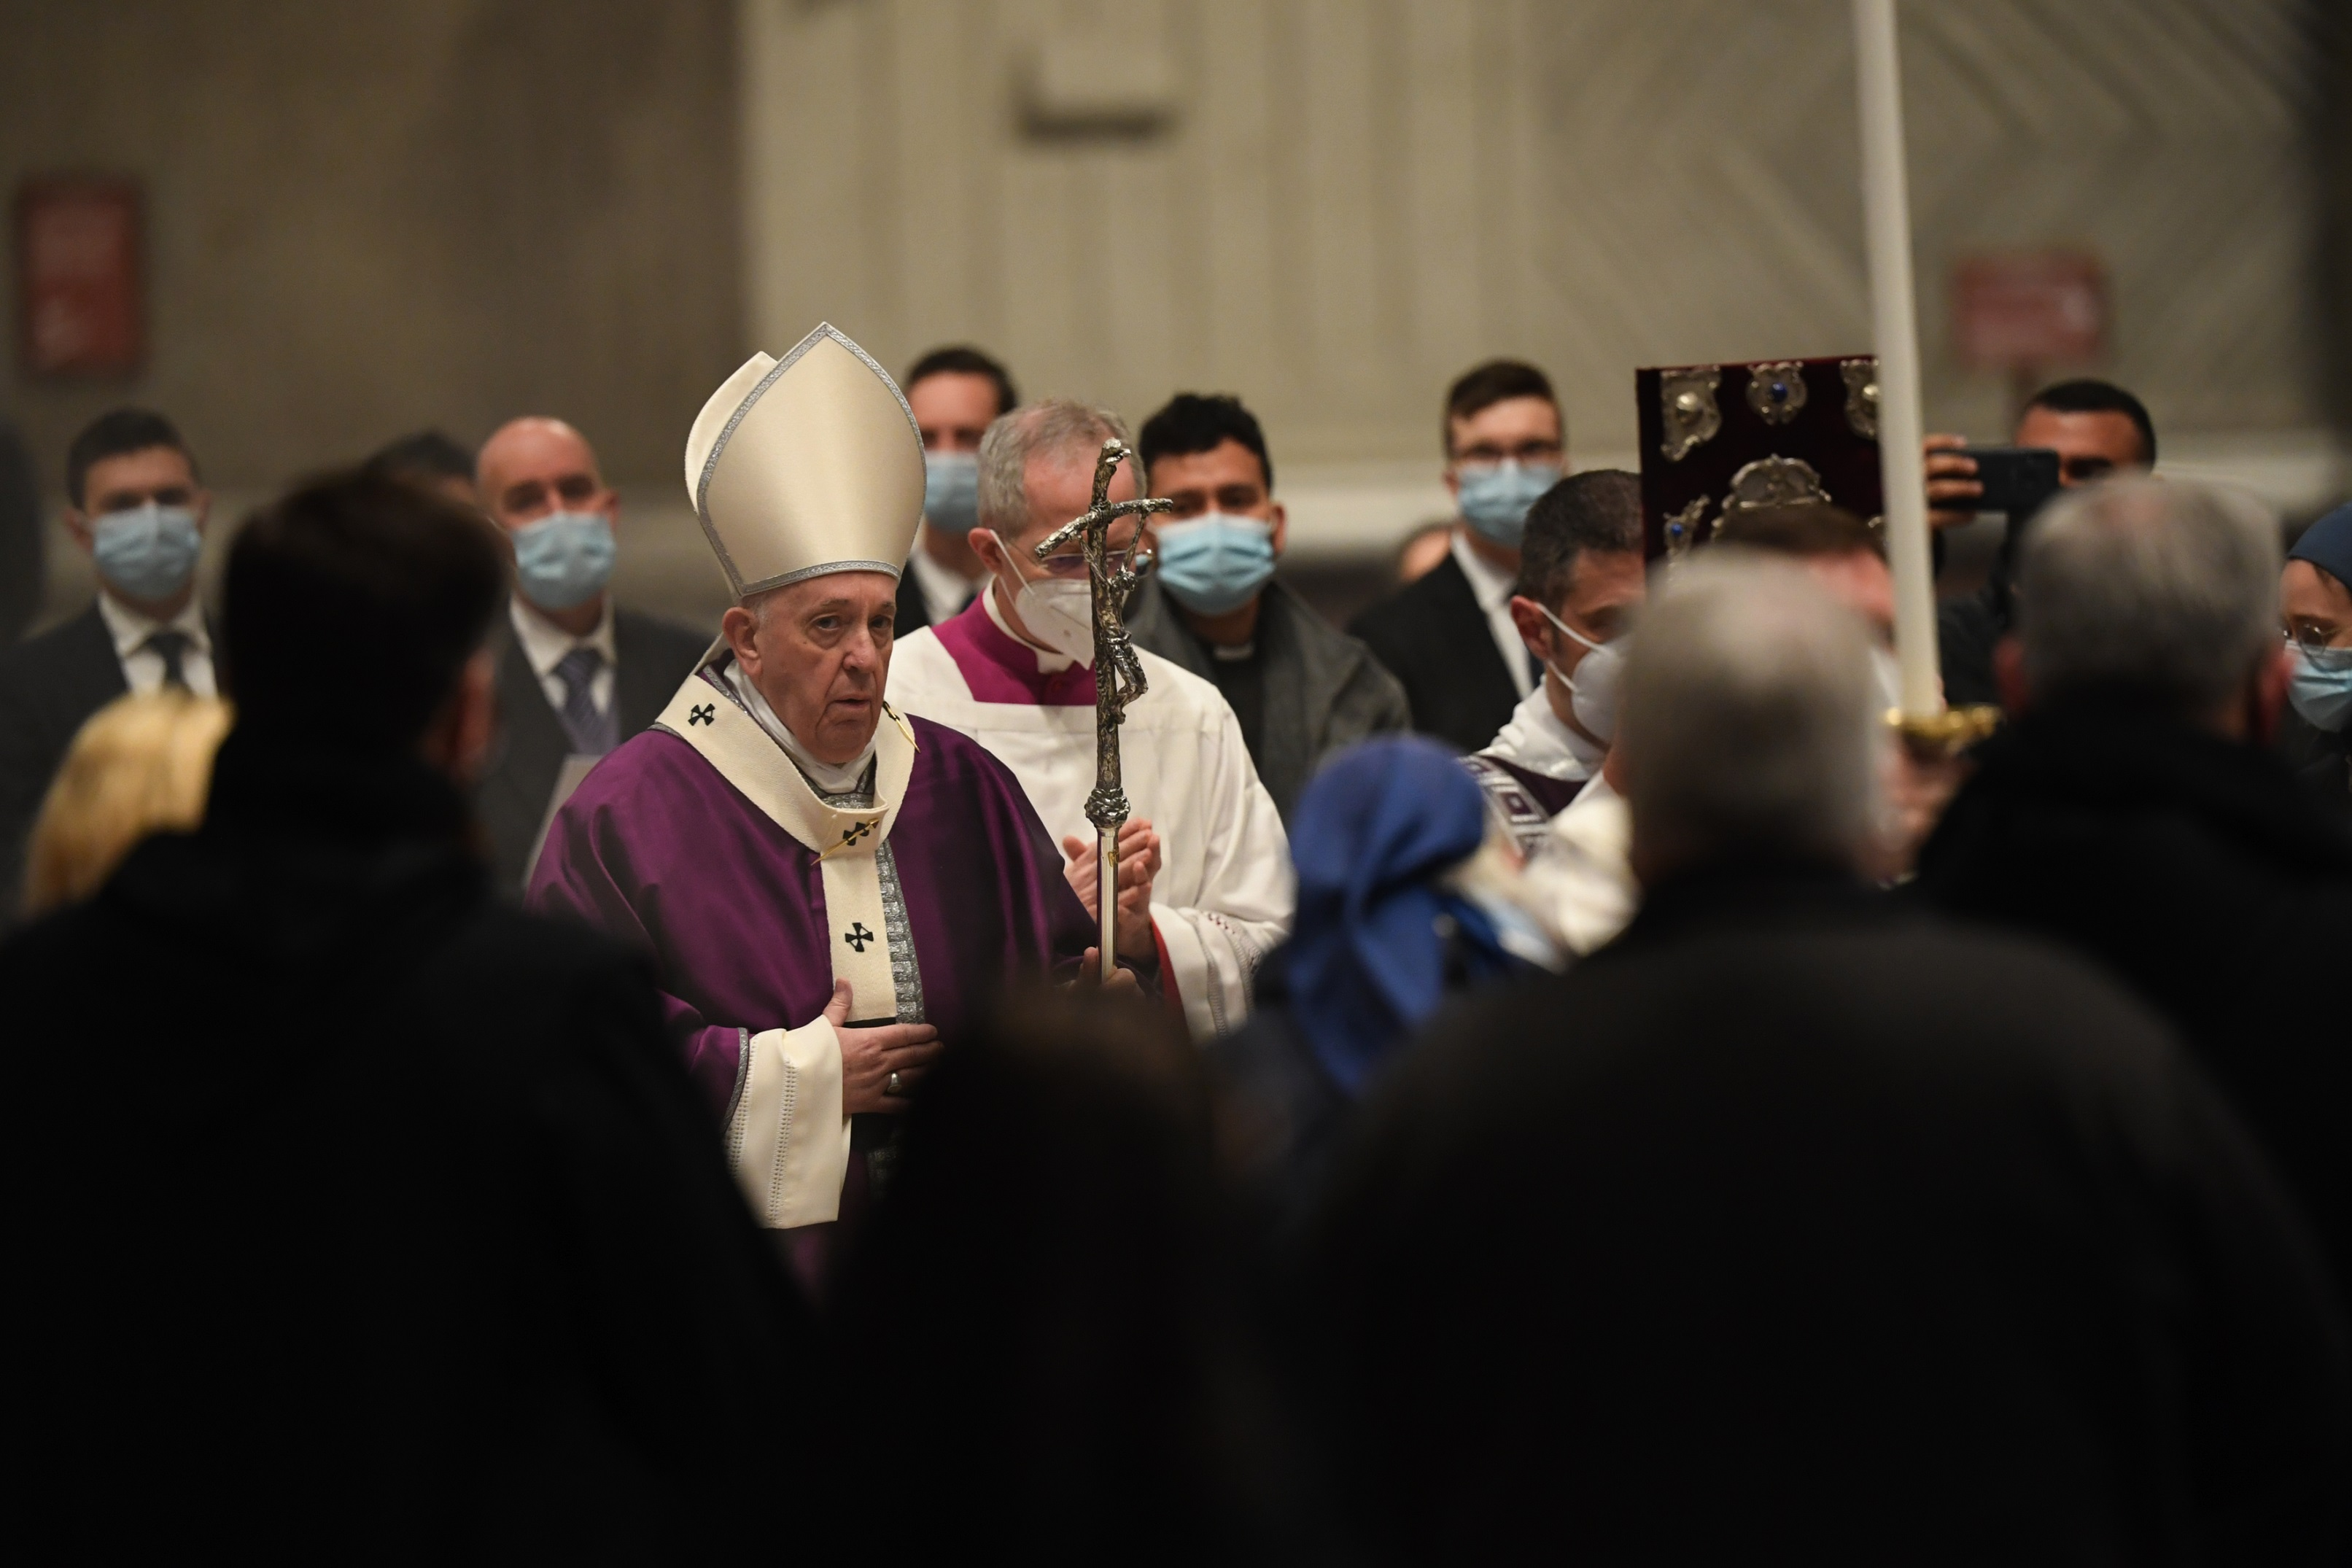 Bishop-elect Guido Marini on Ash Wednesday in St. Peter's Basilica Feb. 17, 2021.